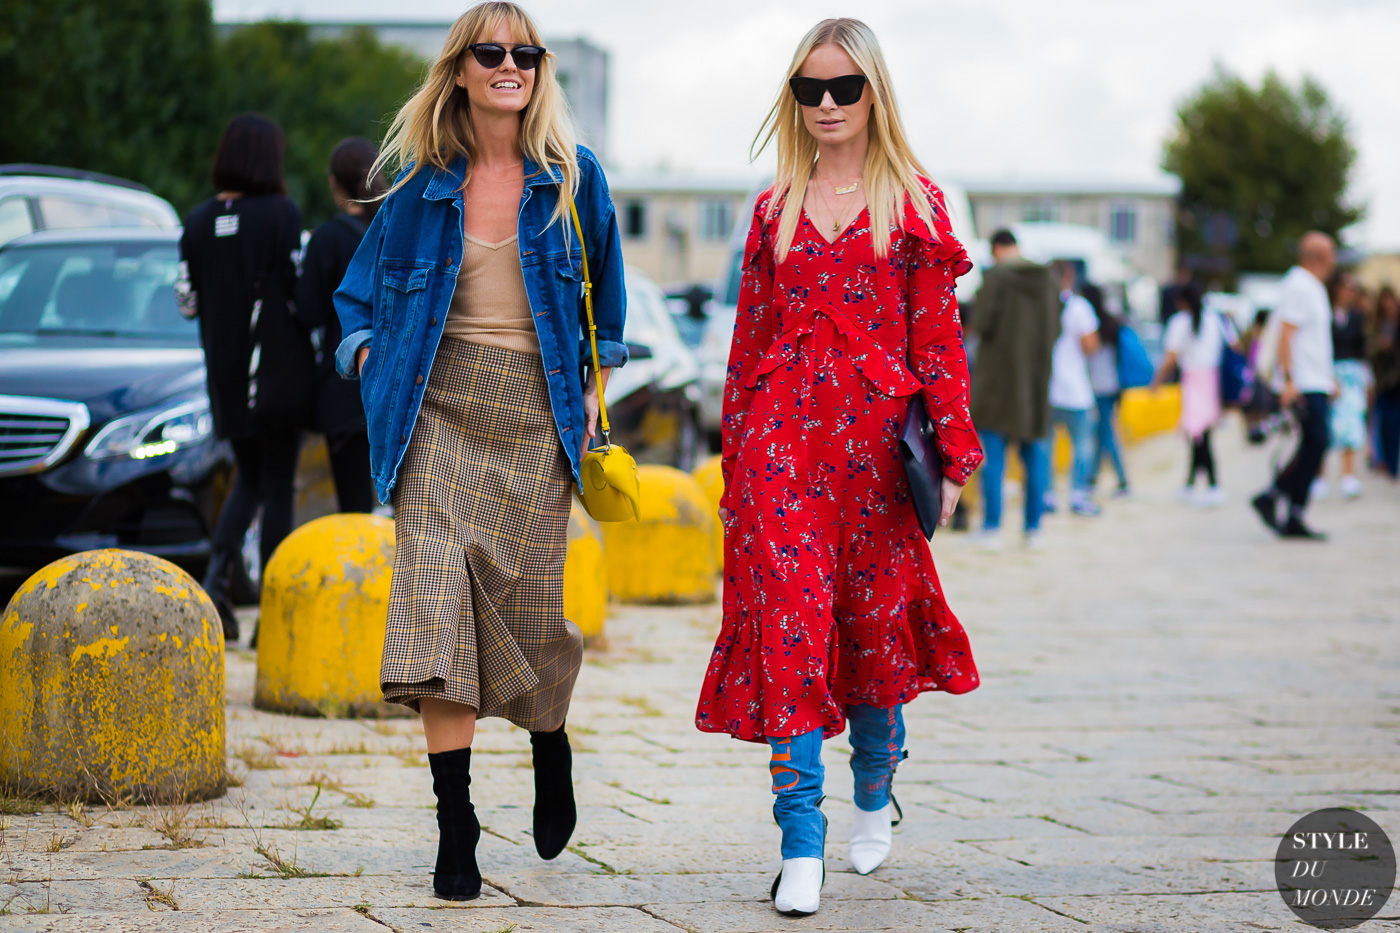 Jeanette Friis Madsen and Thora Valdimarsdottir by STYLEDUMONDE Street Style Fashion Photography0E2A2722